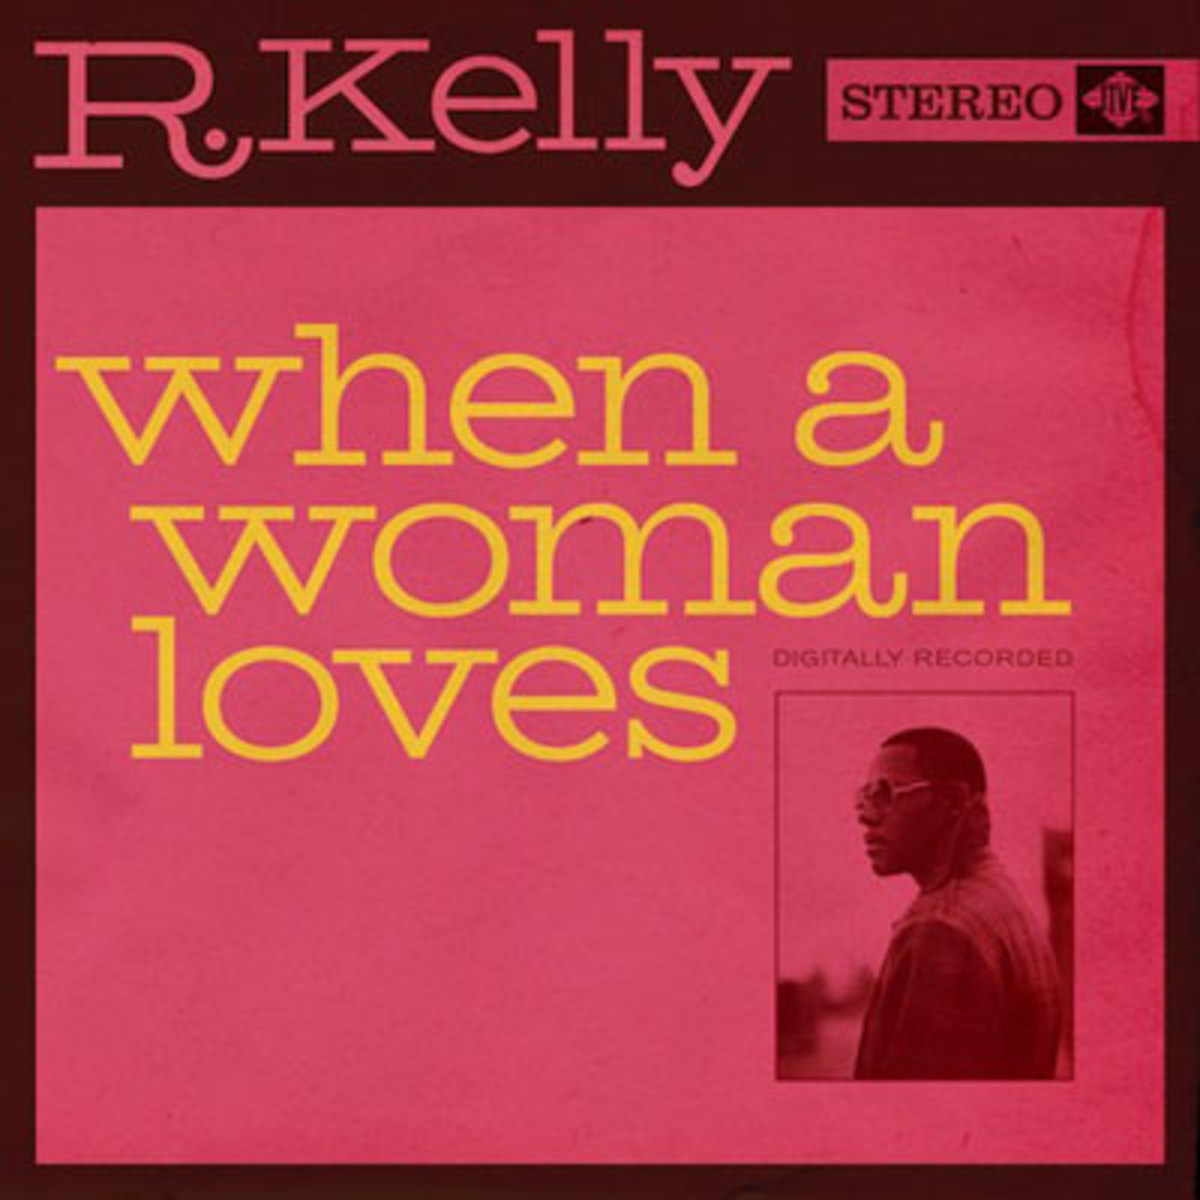 rkelly-whenawomanloves.jpg